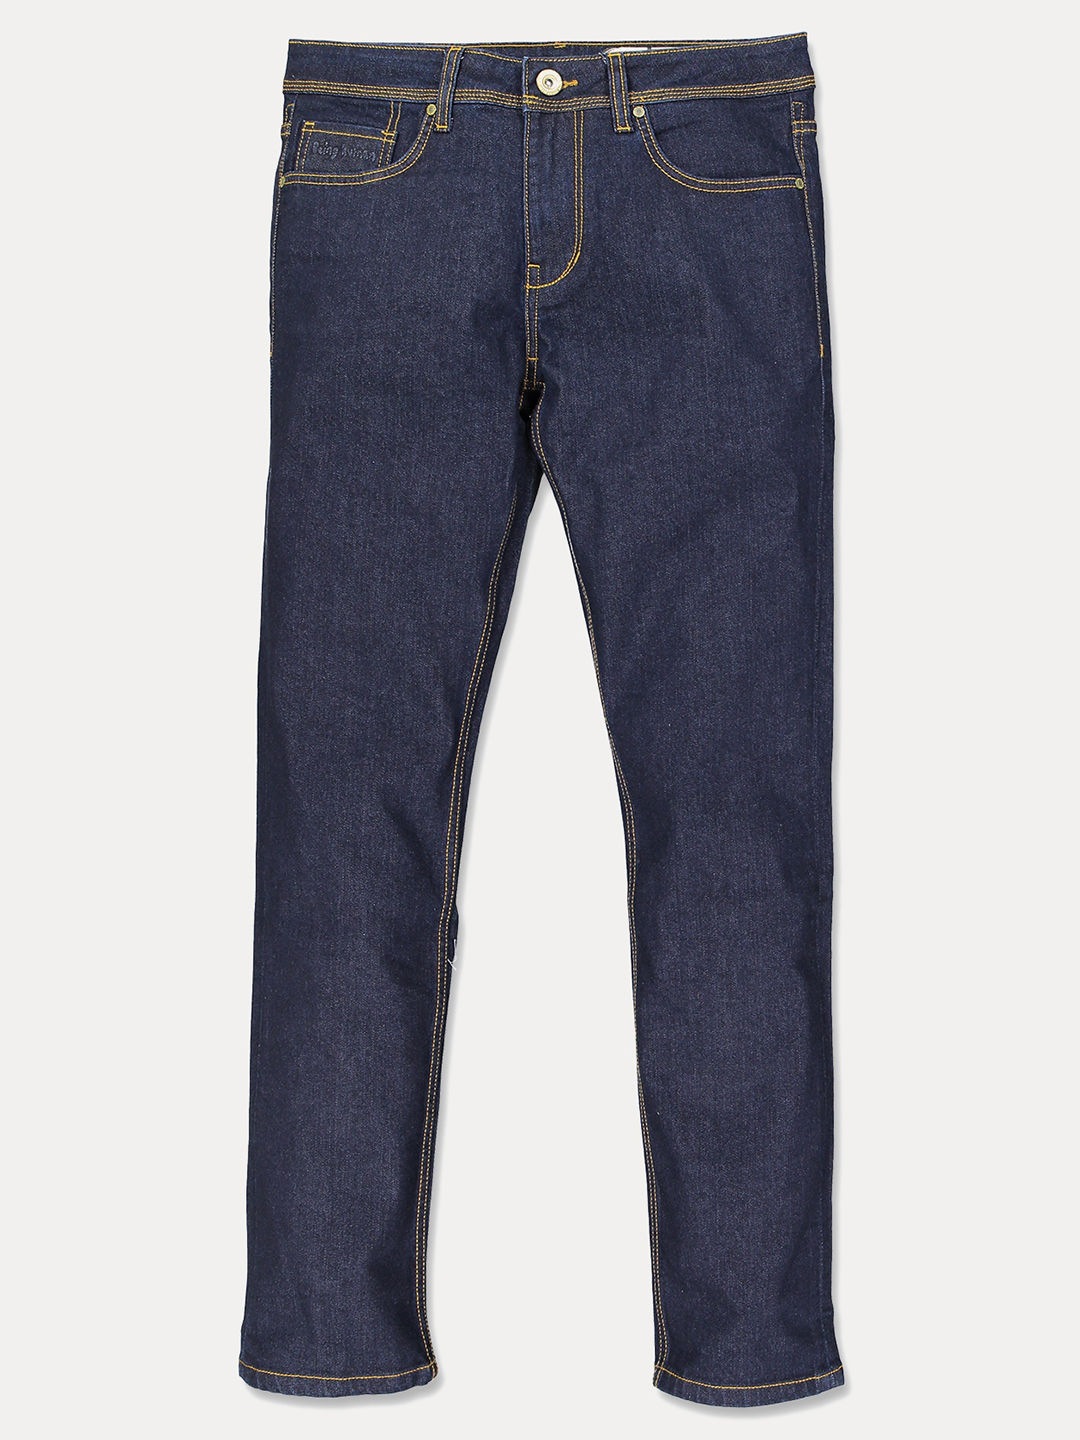 NAVY SOLID STRAIGHT JEANS